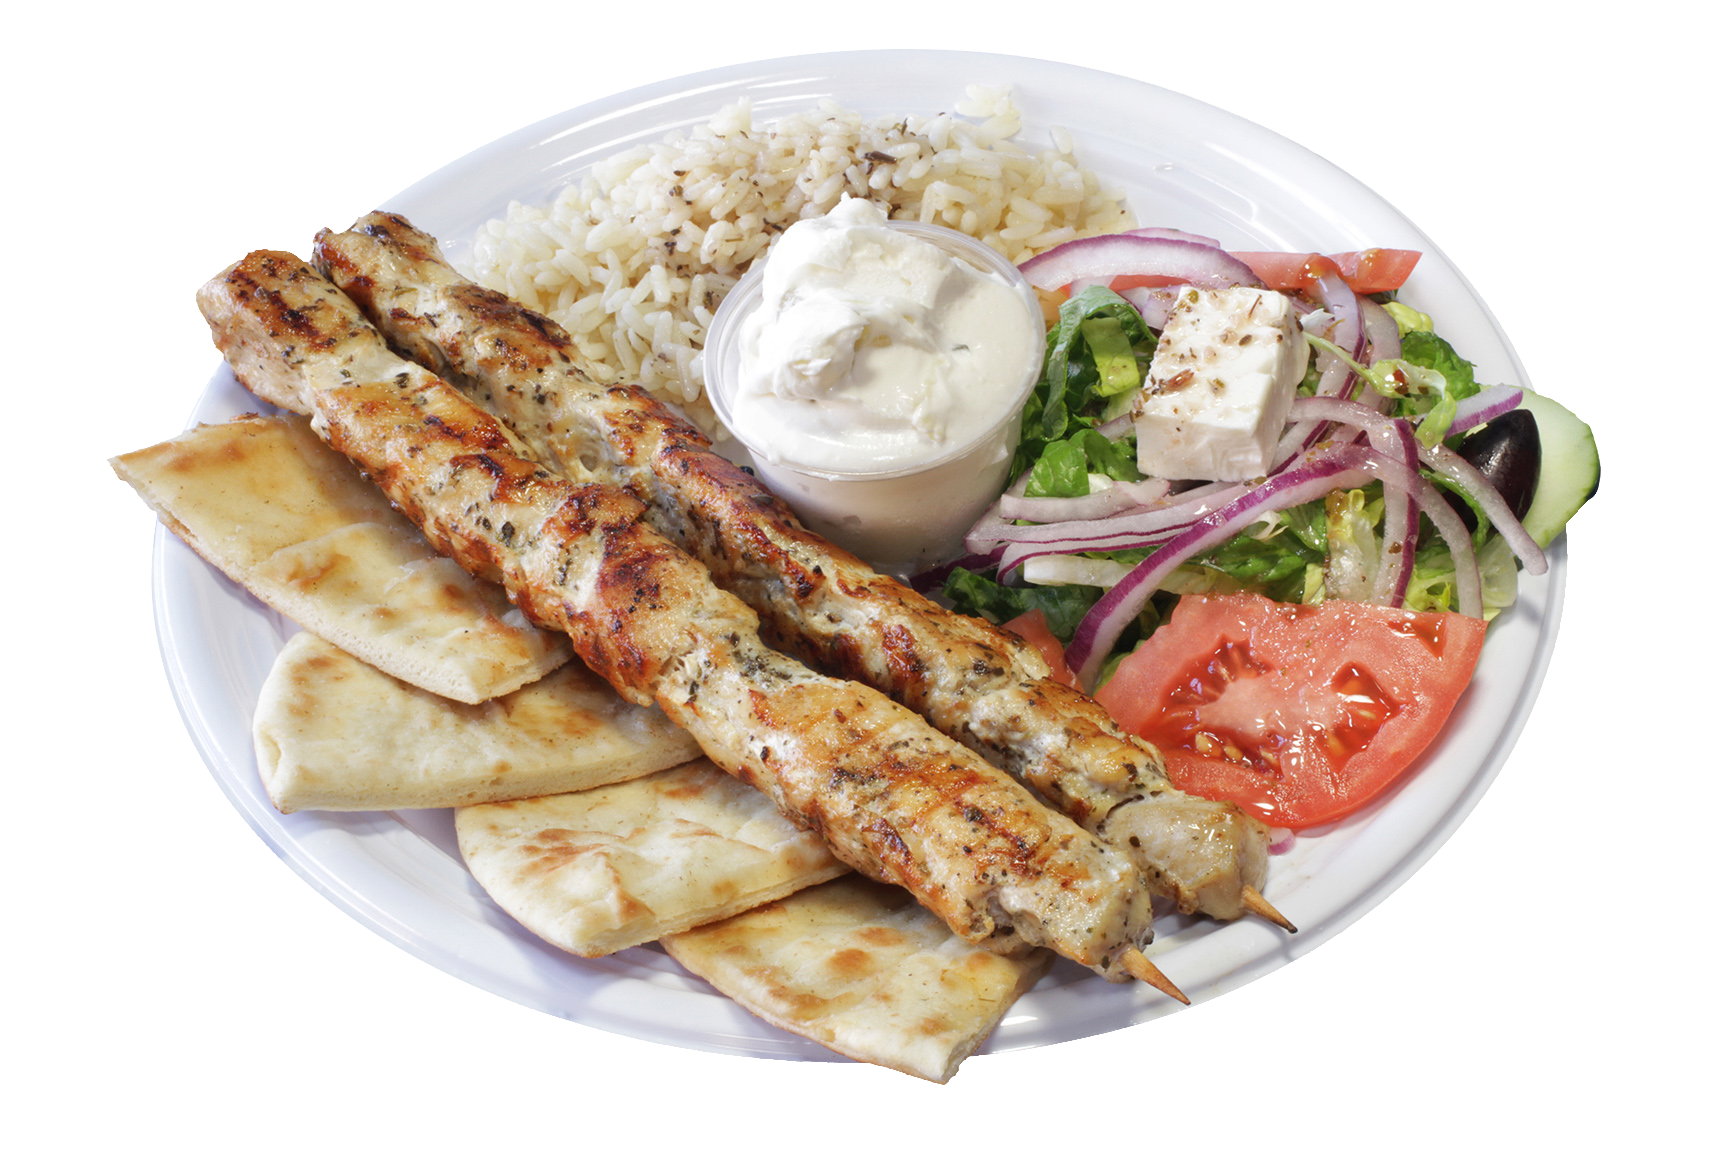 Chicken Souvlaki Plate